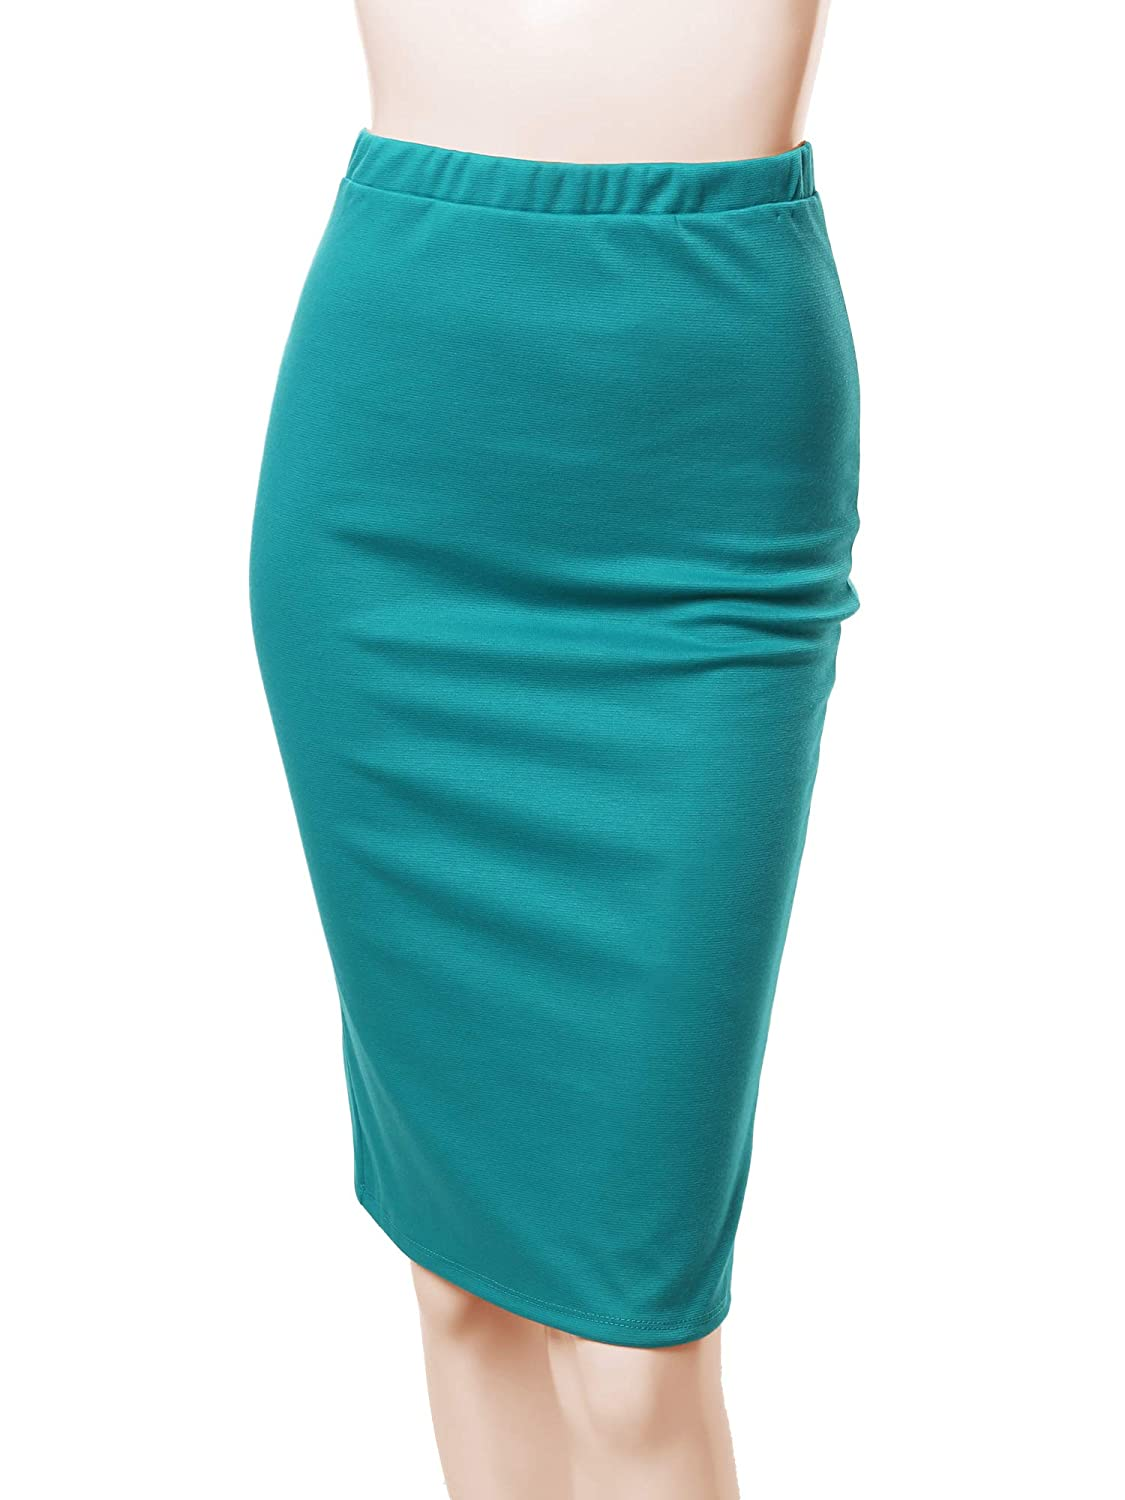 Aawskm0005 Jade Awesome21 Women's Fitted Stretch Solid Print High Waist Midi Pencil Skirt  Made in USA